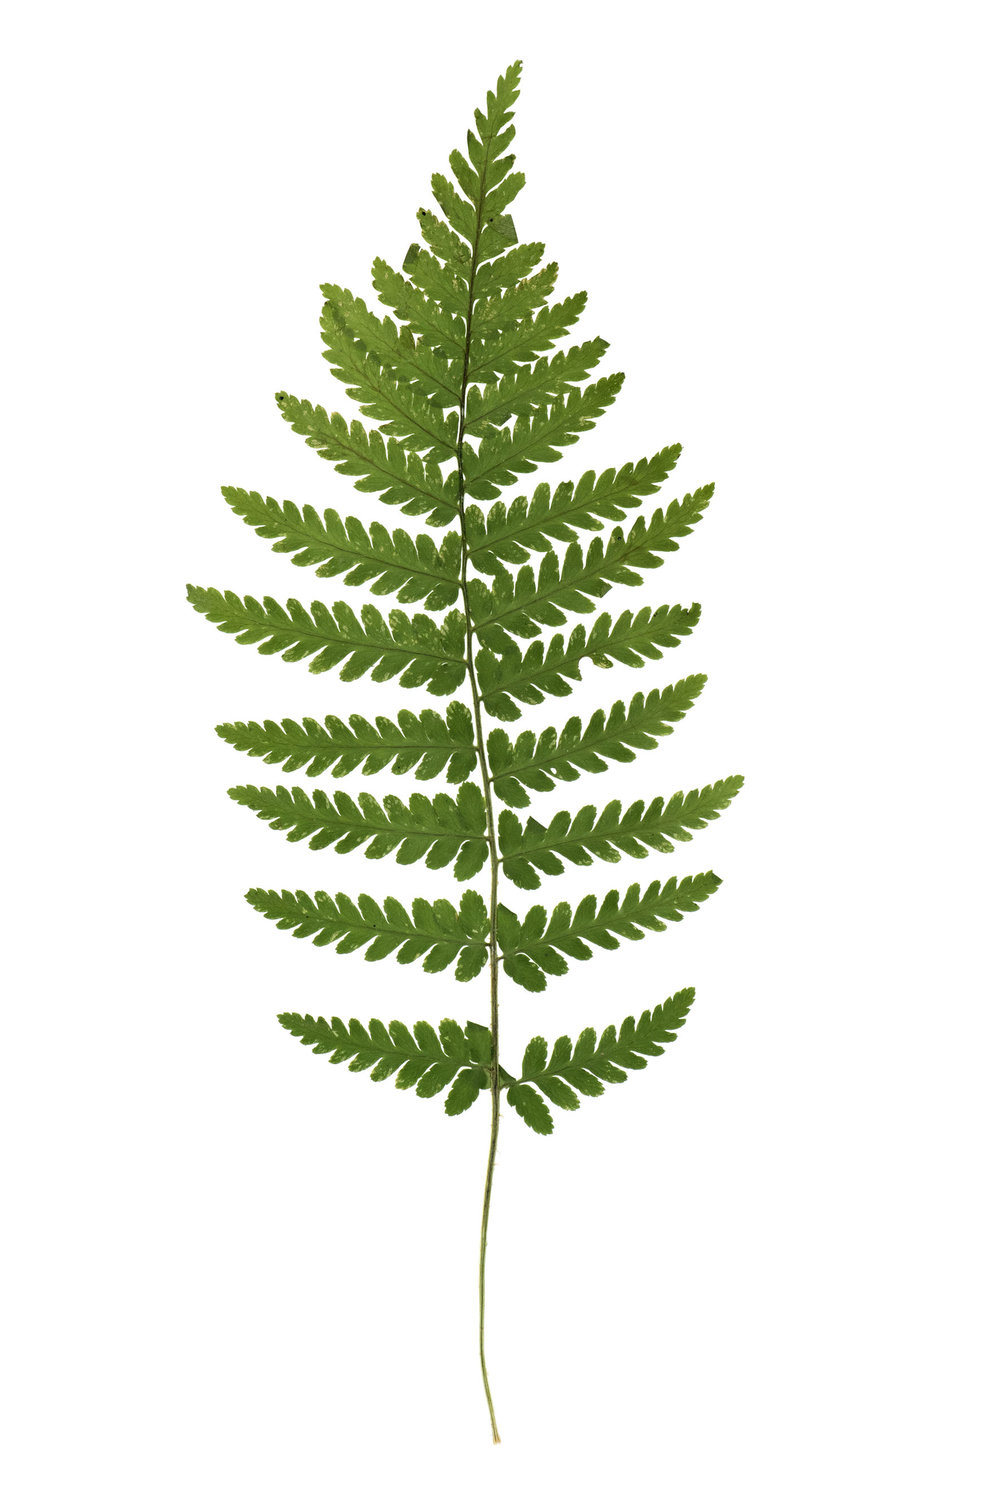 New! Dryopteris carthusiana / Spinulose Wood Fern